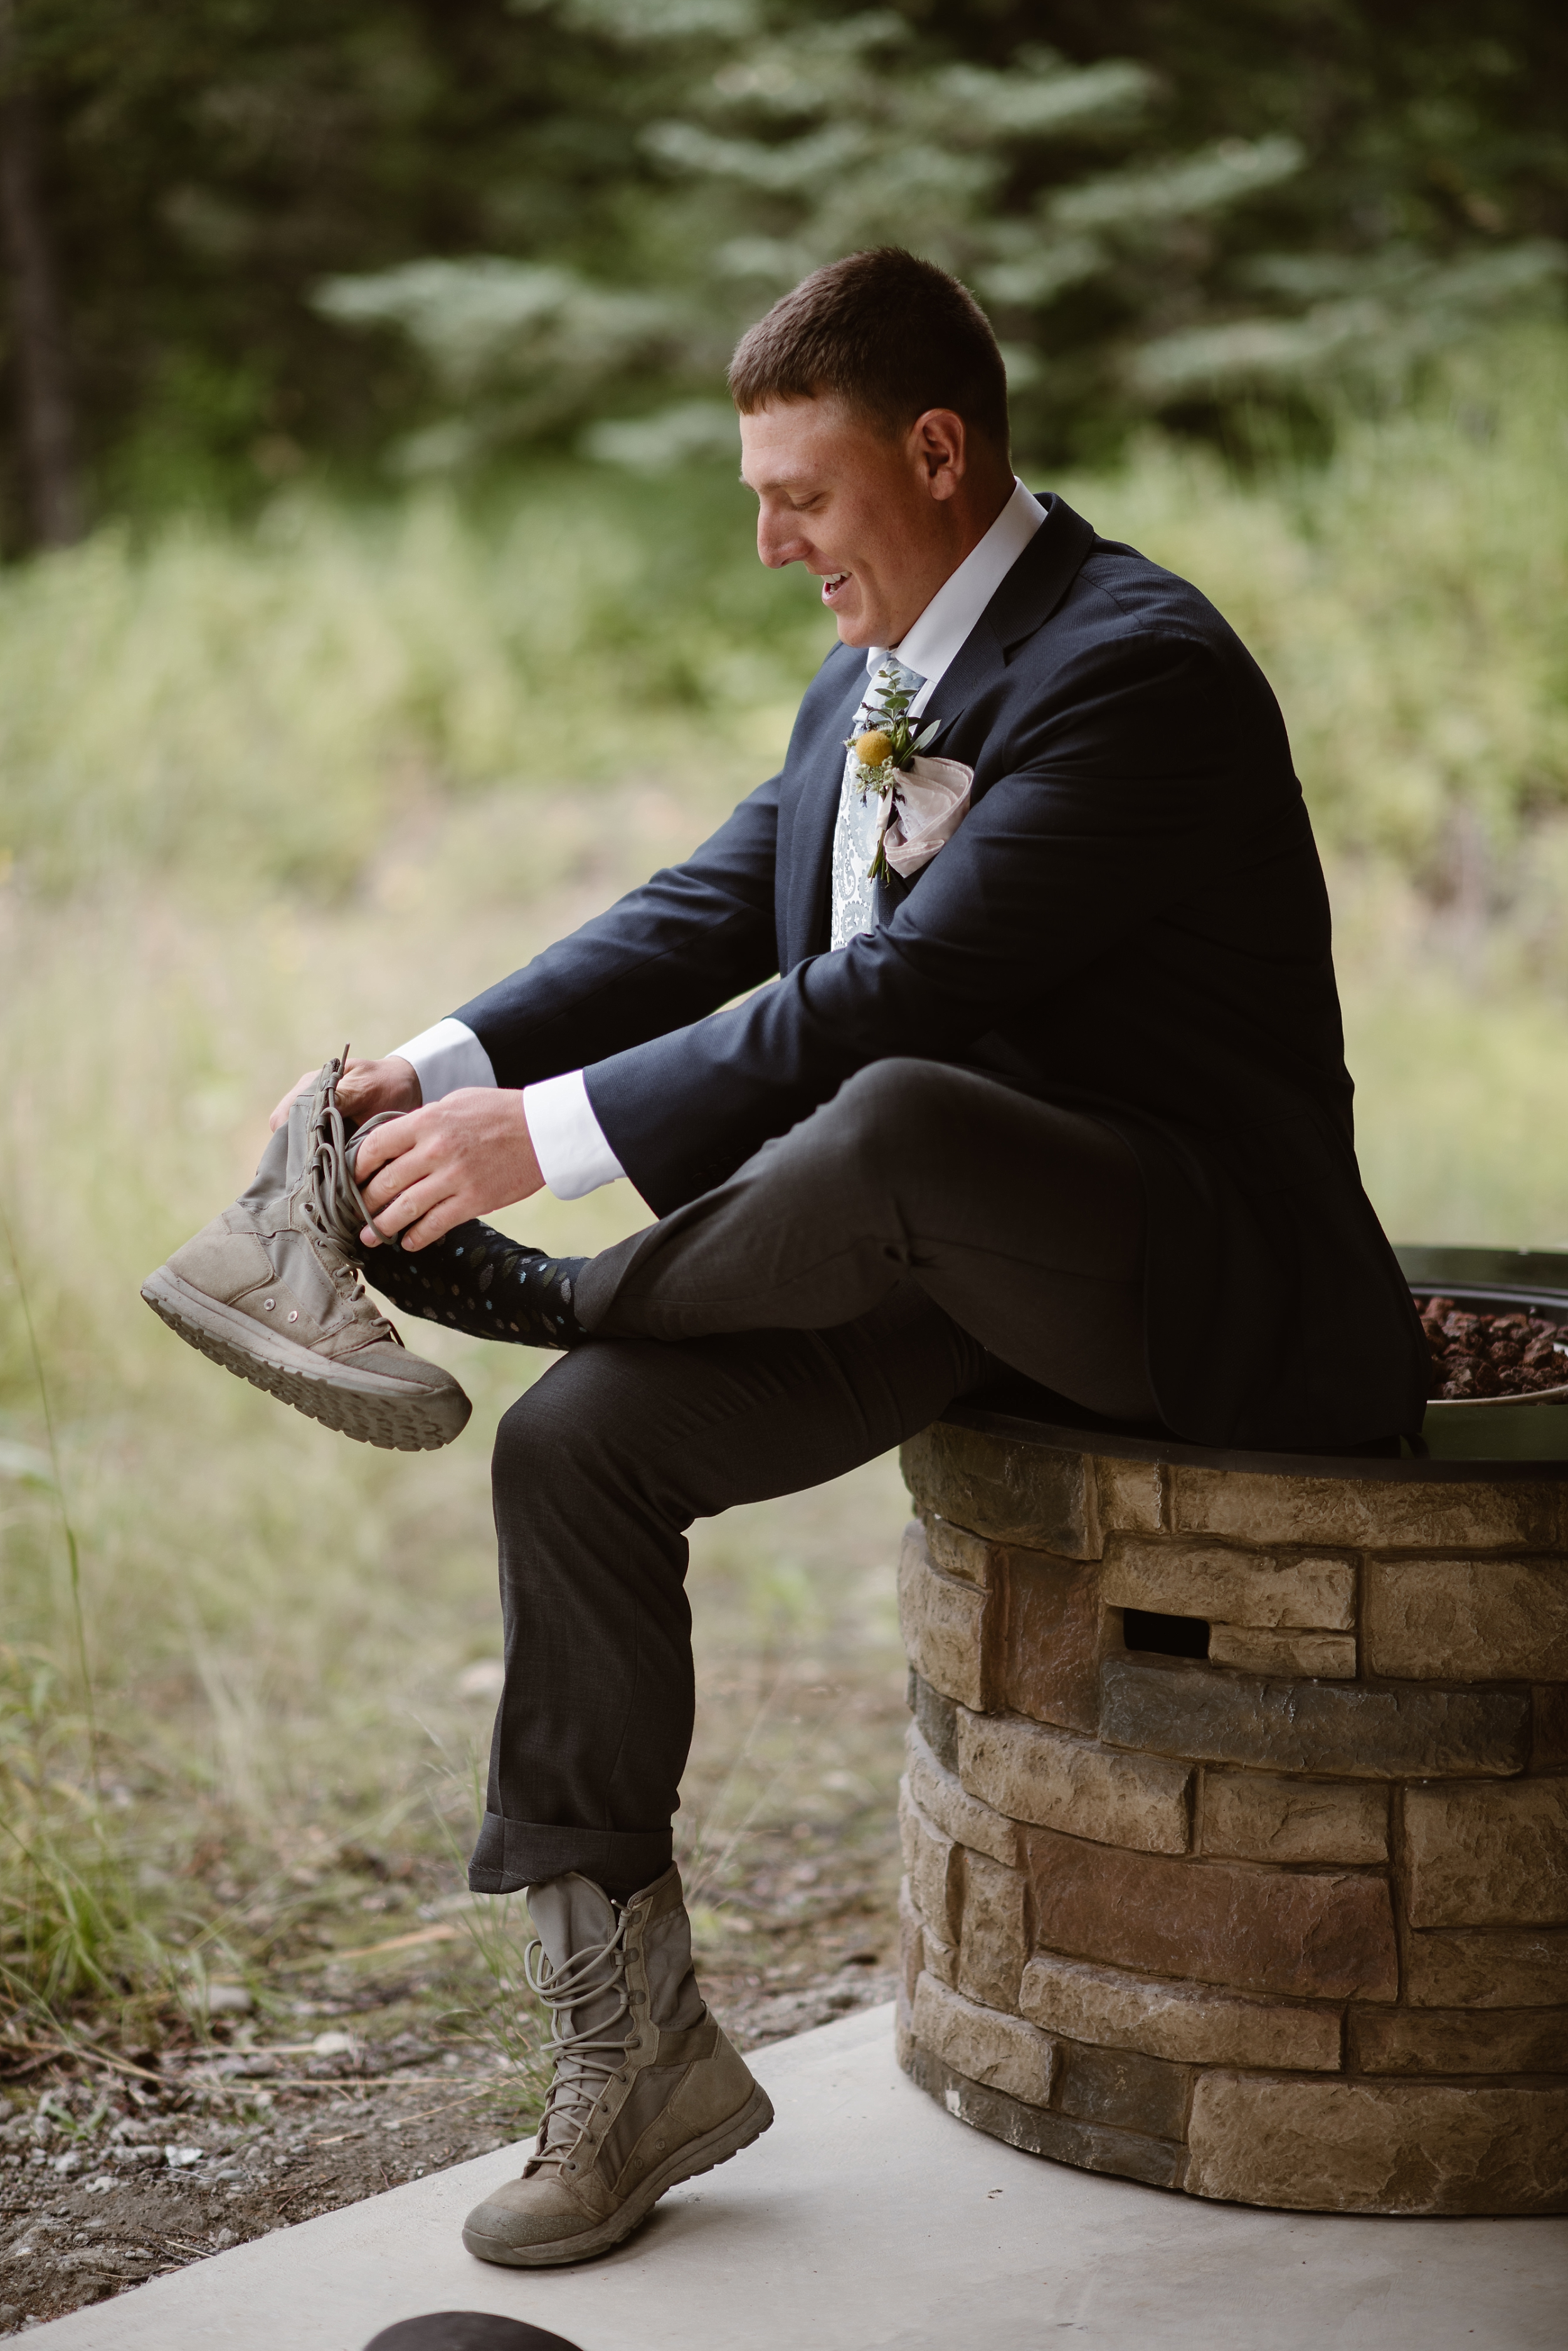 The groom sits on a stone fire pit as he puts on his hiking boots before his Alaska destination wedding. Suited up with his fancy clothes and hiking boots, the groom smiles in this elopement pictures captured by Adventure Instead, an elopement photographer.